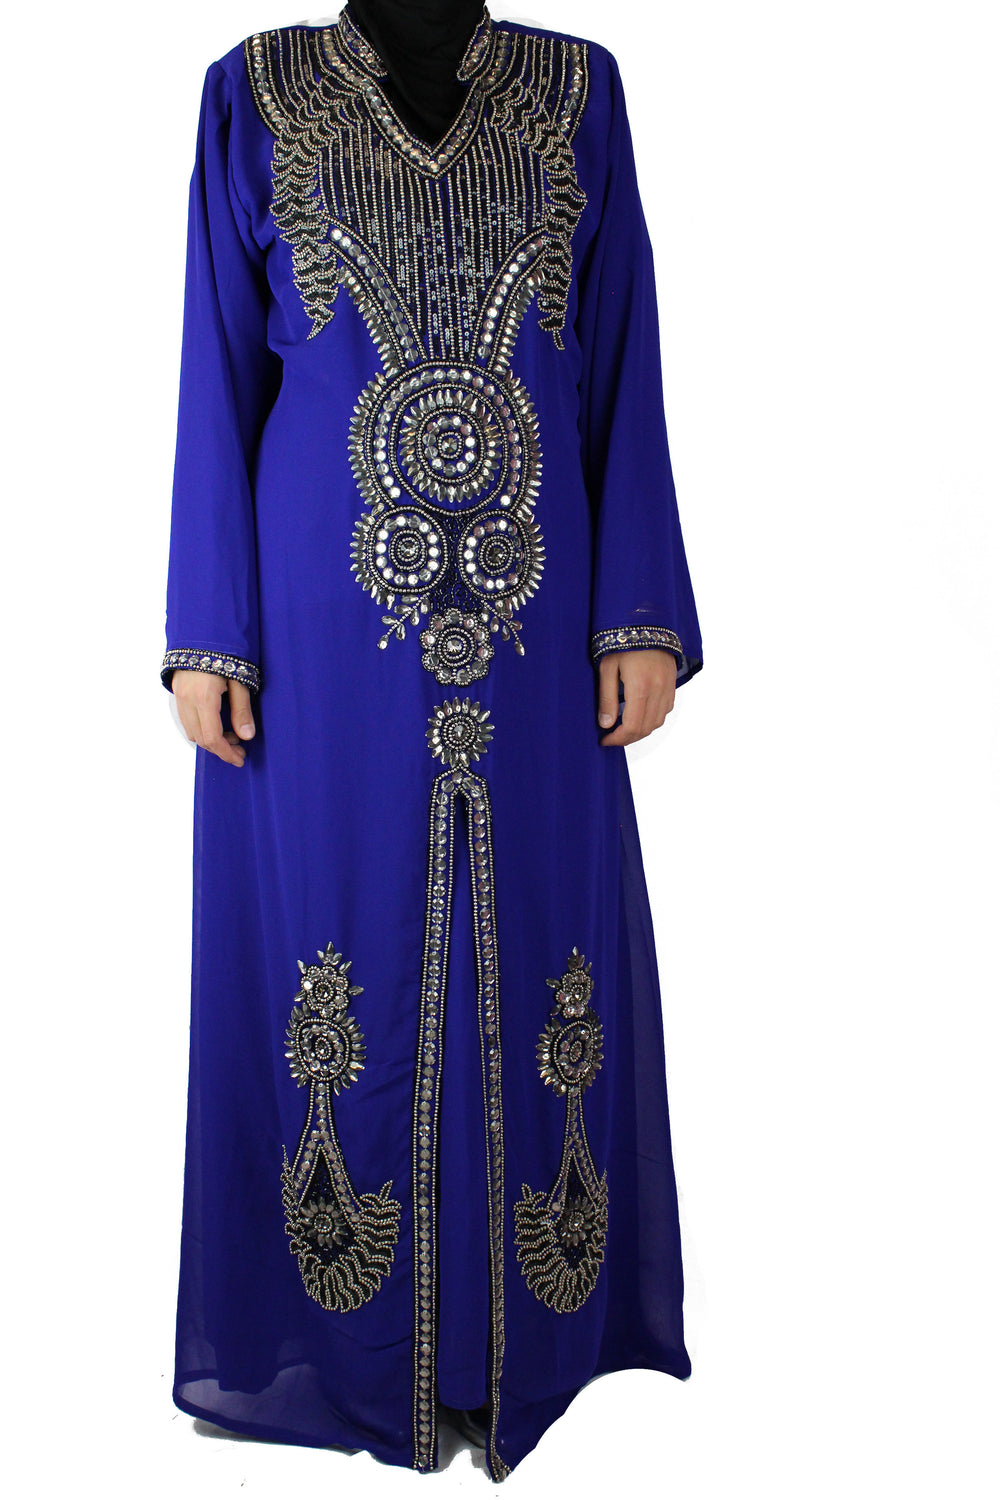 Crystal Embellished Kaftan - Royal Blue